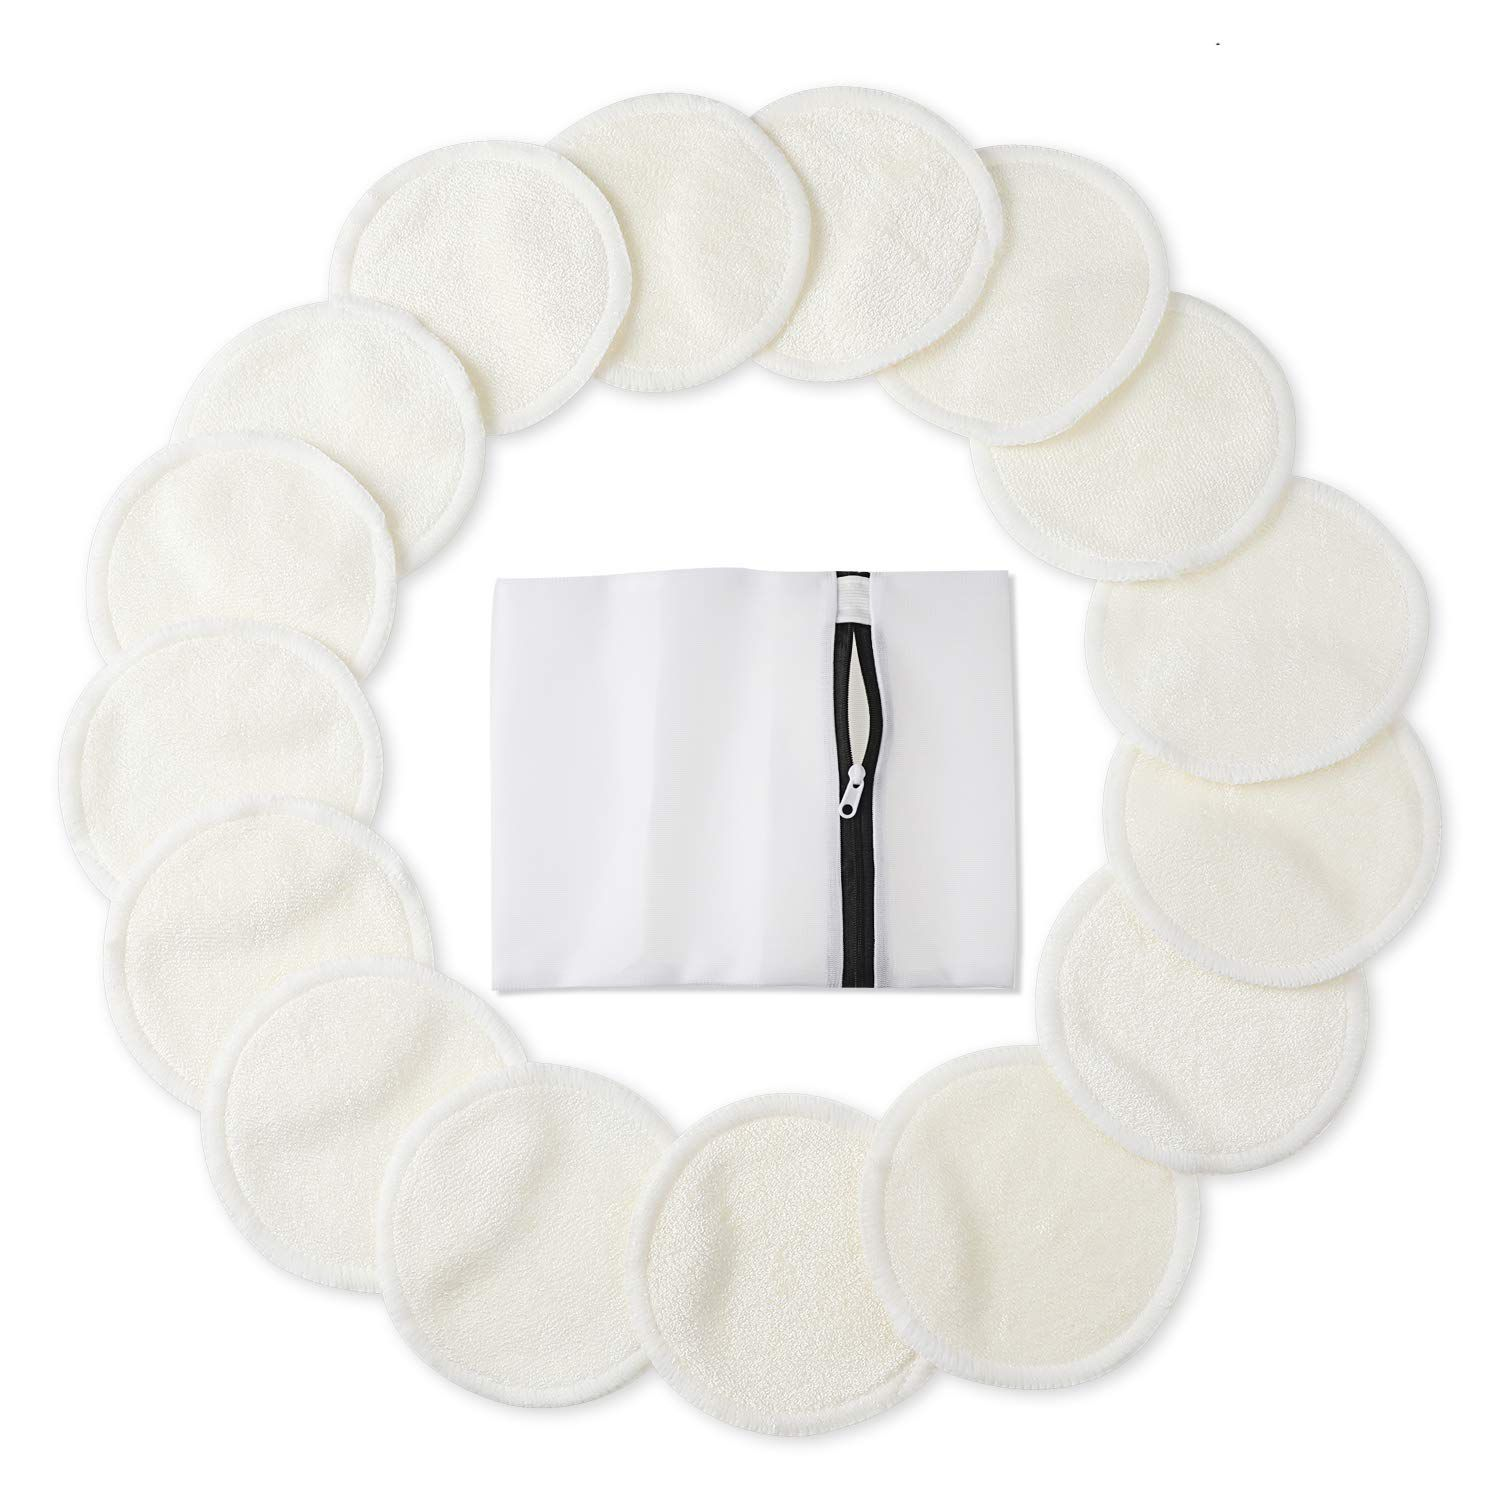 bamboo cotton pads